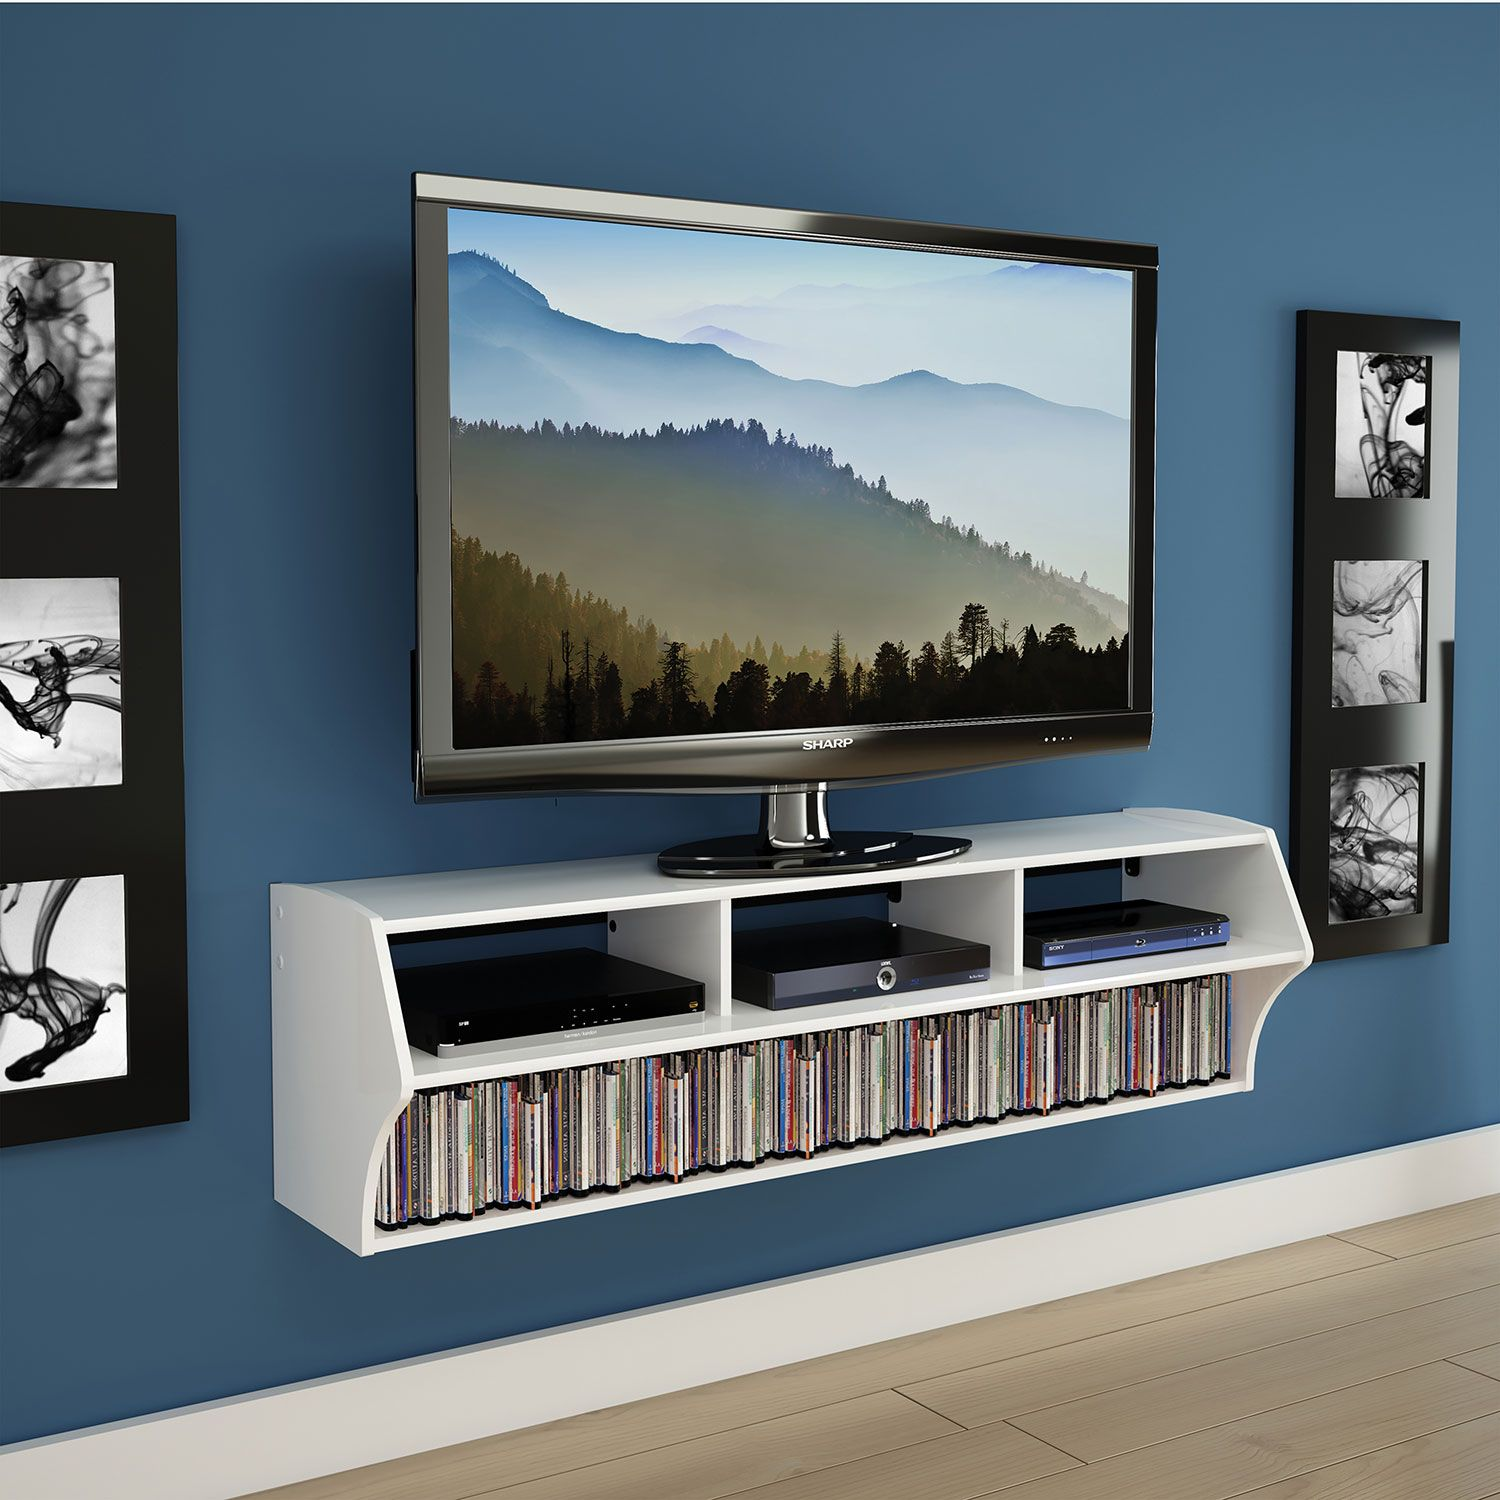 Prepac Altus Plus 60 Floating Tv Stand White Tv Mounts Best Buy Canada Tv Wall Shelves Wall Mount Tv Stand Wall Mount Entertainment Center